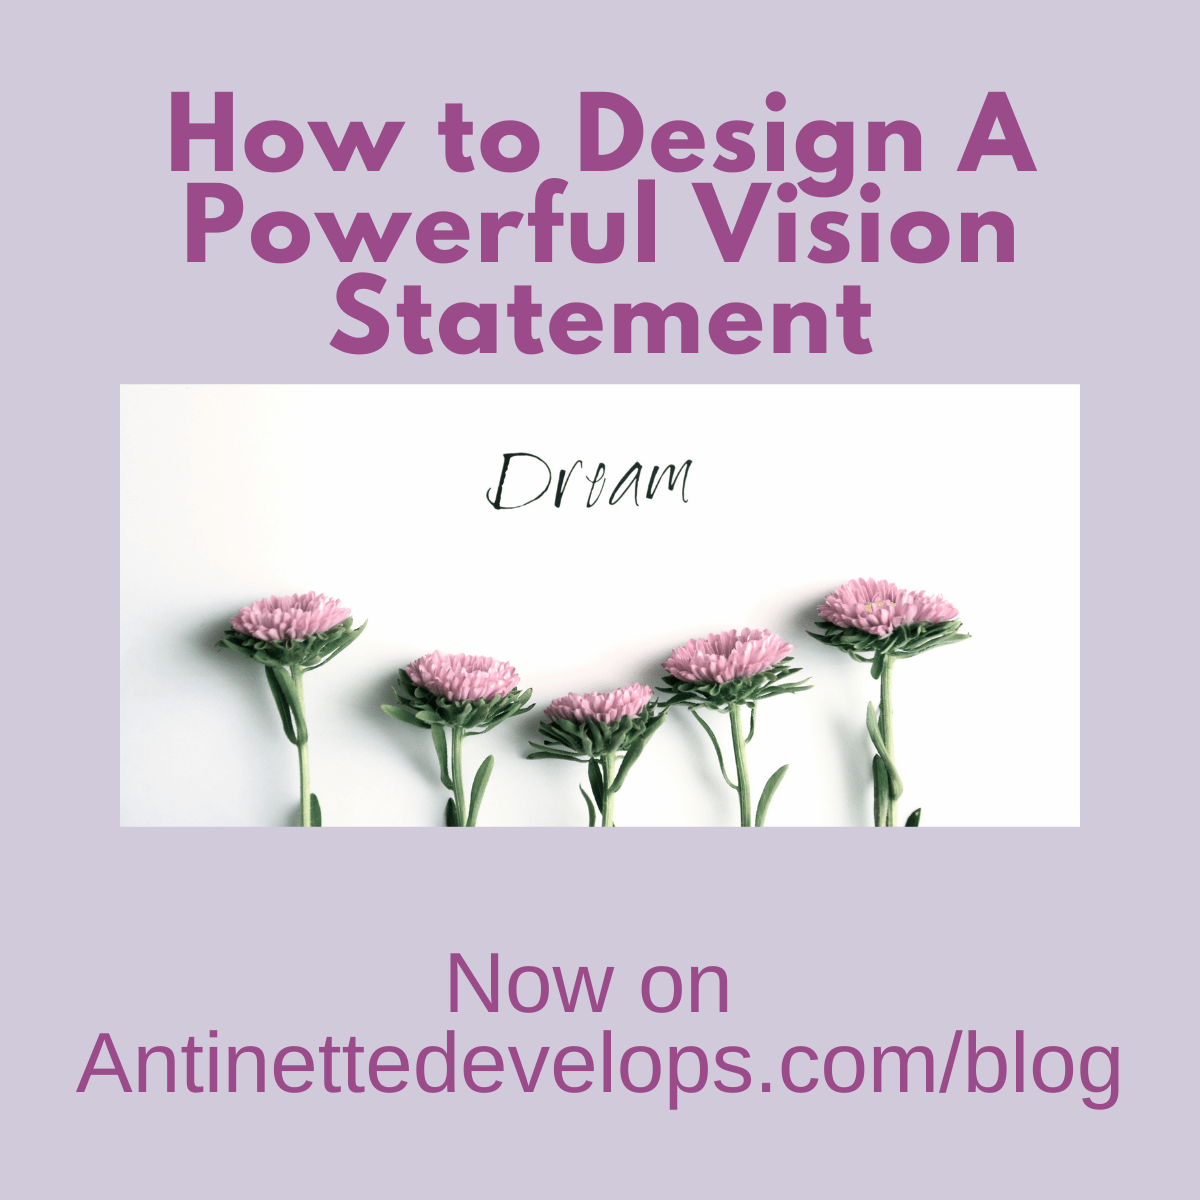 How to Design A Powerful Vision Statement